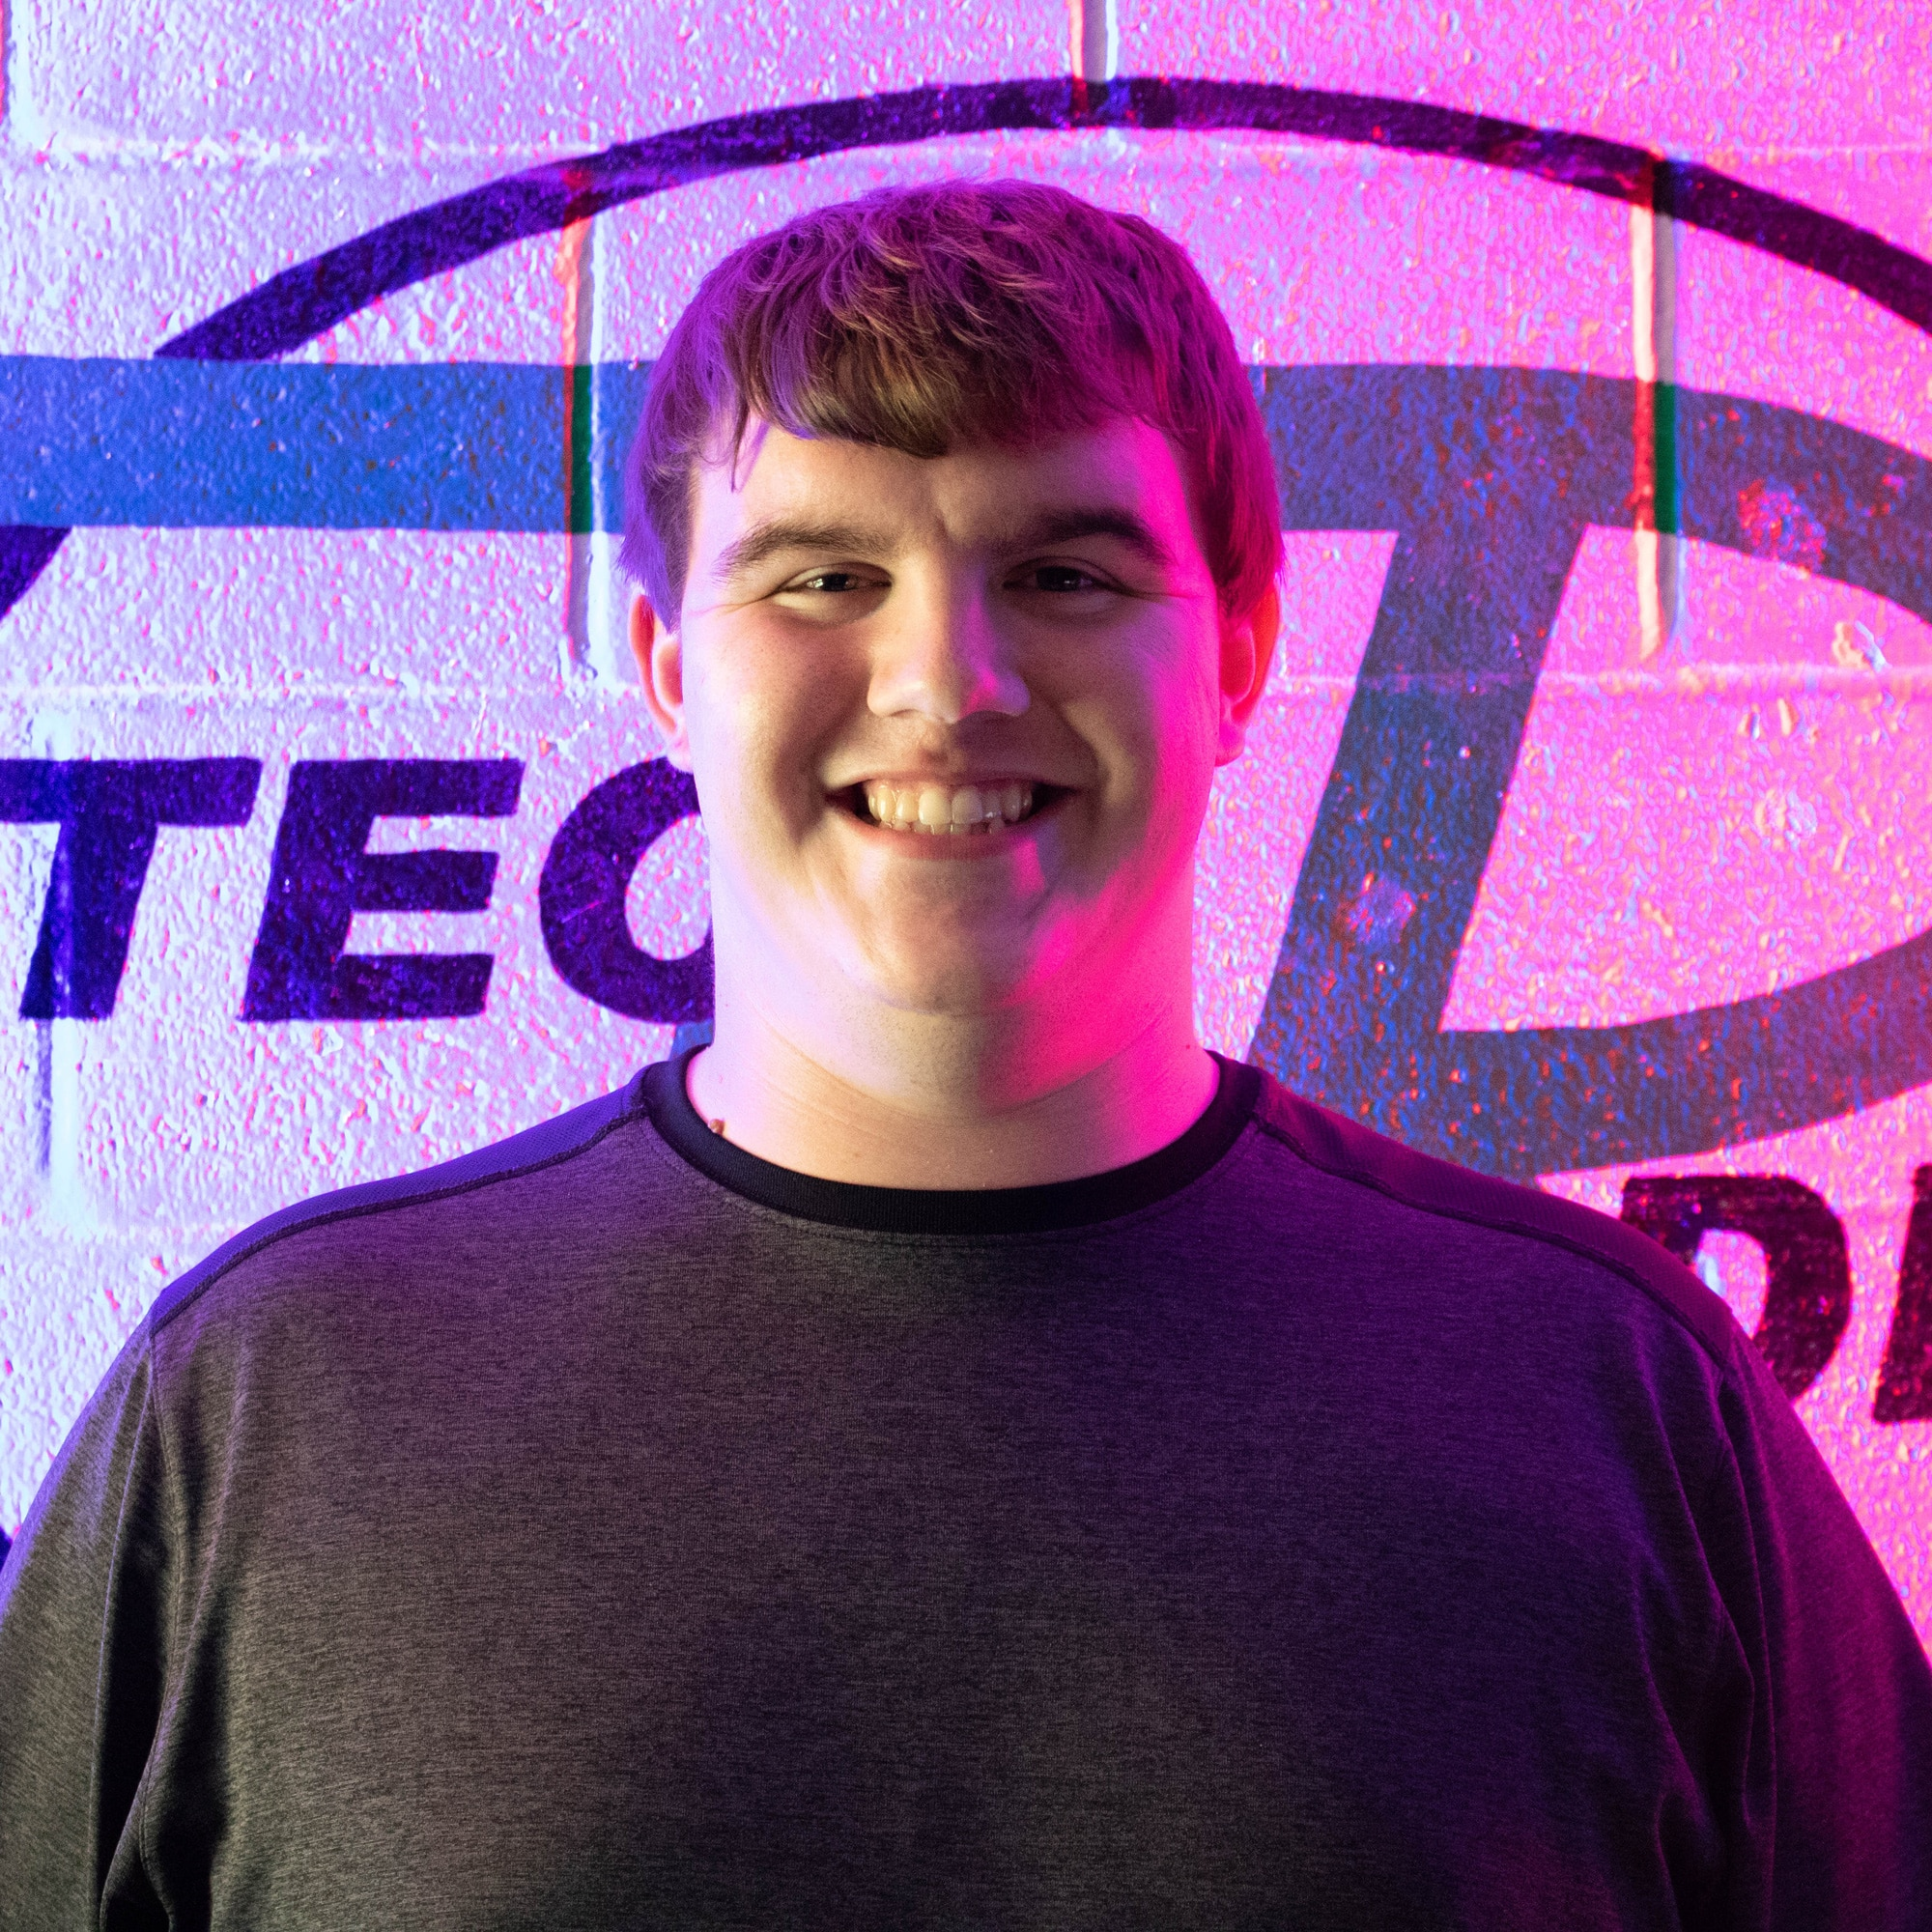 Zach Davis, student, in front of the WVTC sign on the wall